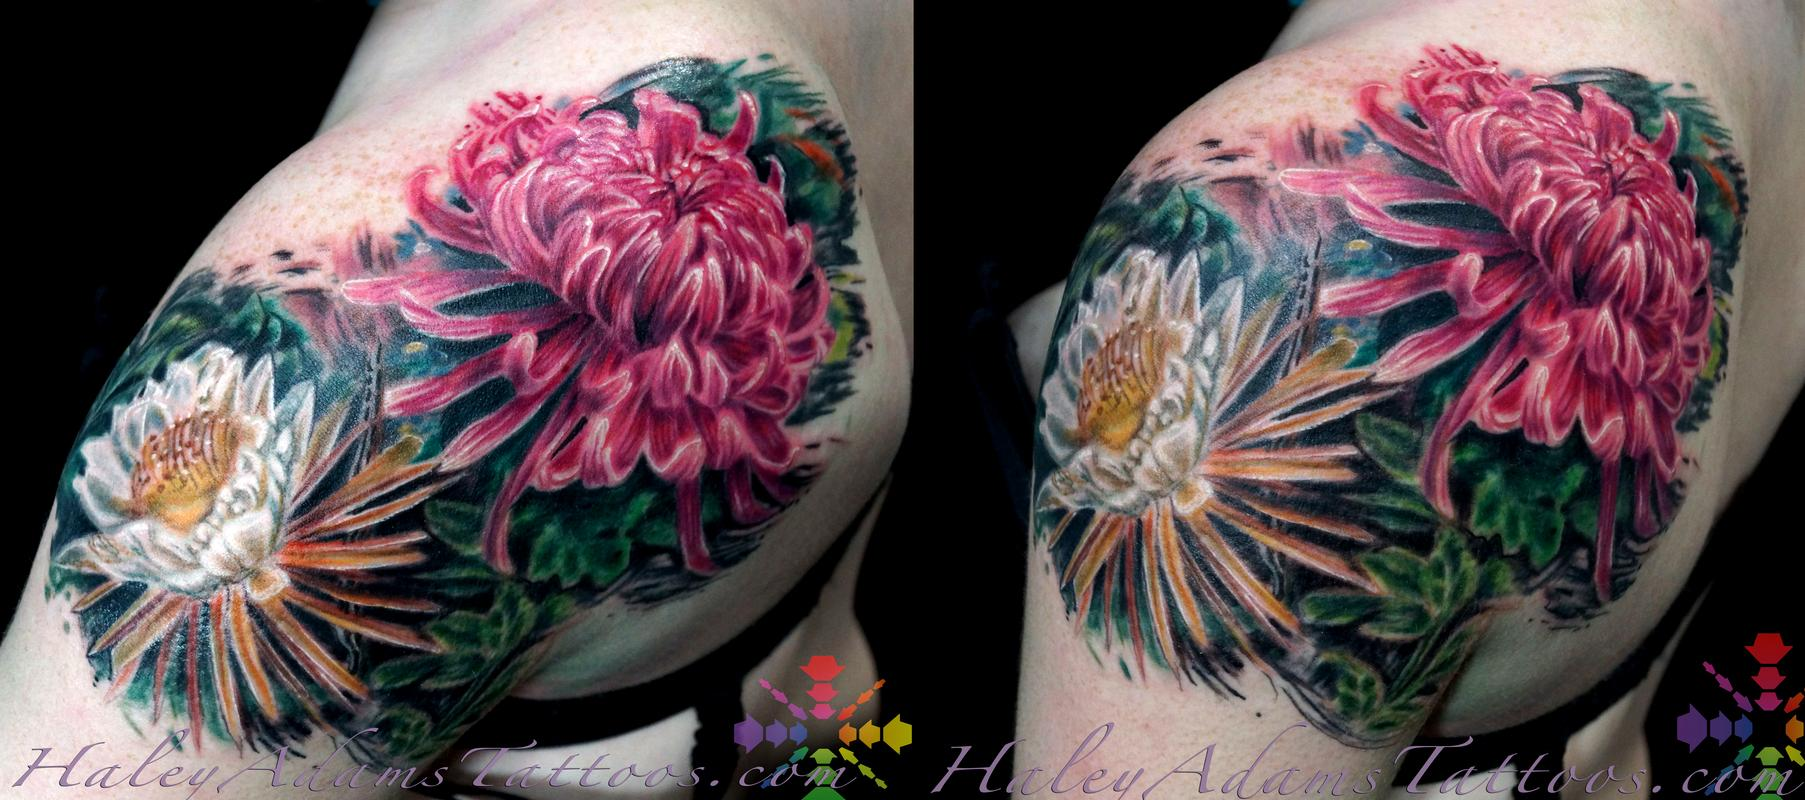 Haley Adams Tattoo Tattoos Oddities Flowers On Shoulder And